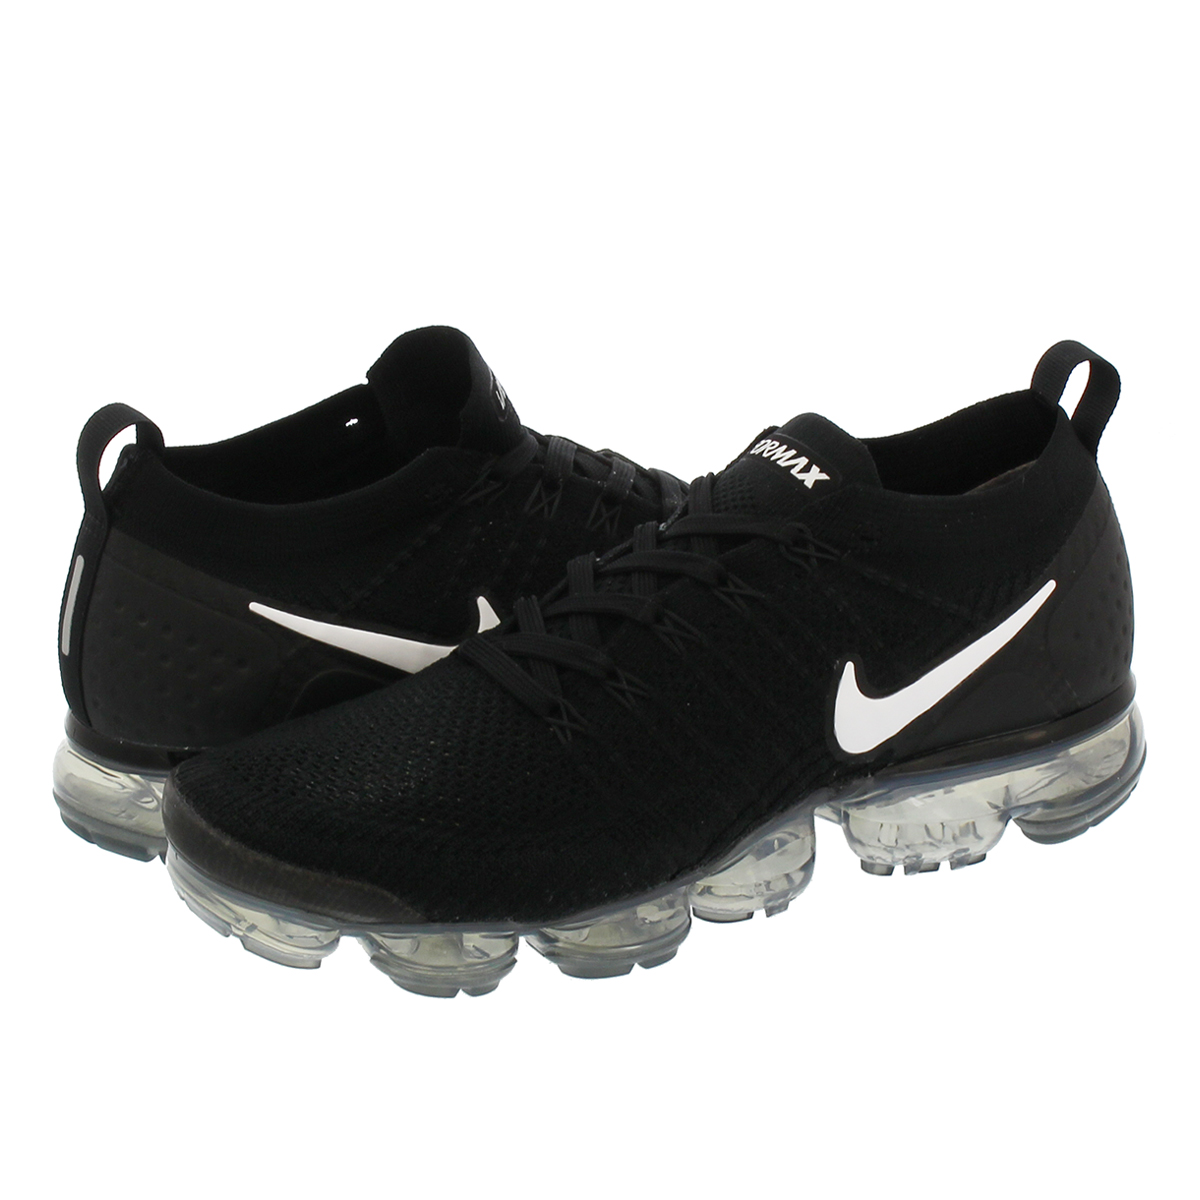 finest selection 1a9d8 6028b NIKE AIR VAPORMAX FLYKNIT 2 Nike vapor max fried food knit 2 BLACK WHITE DARK  GREY METALLIC SILVER